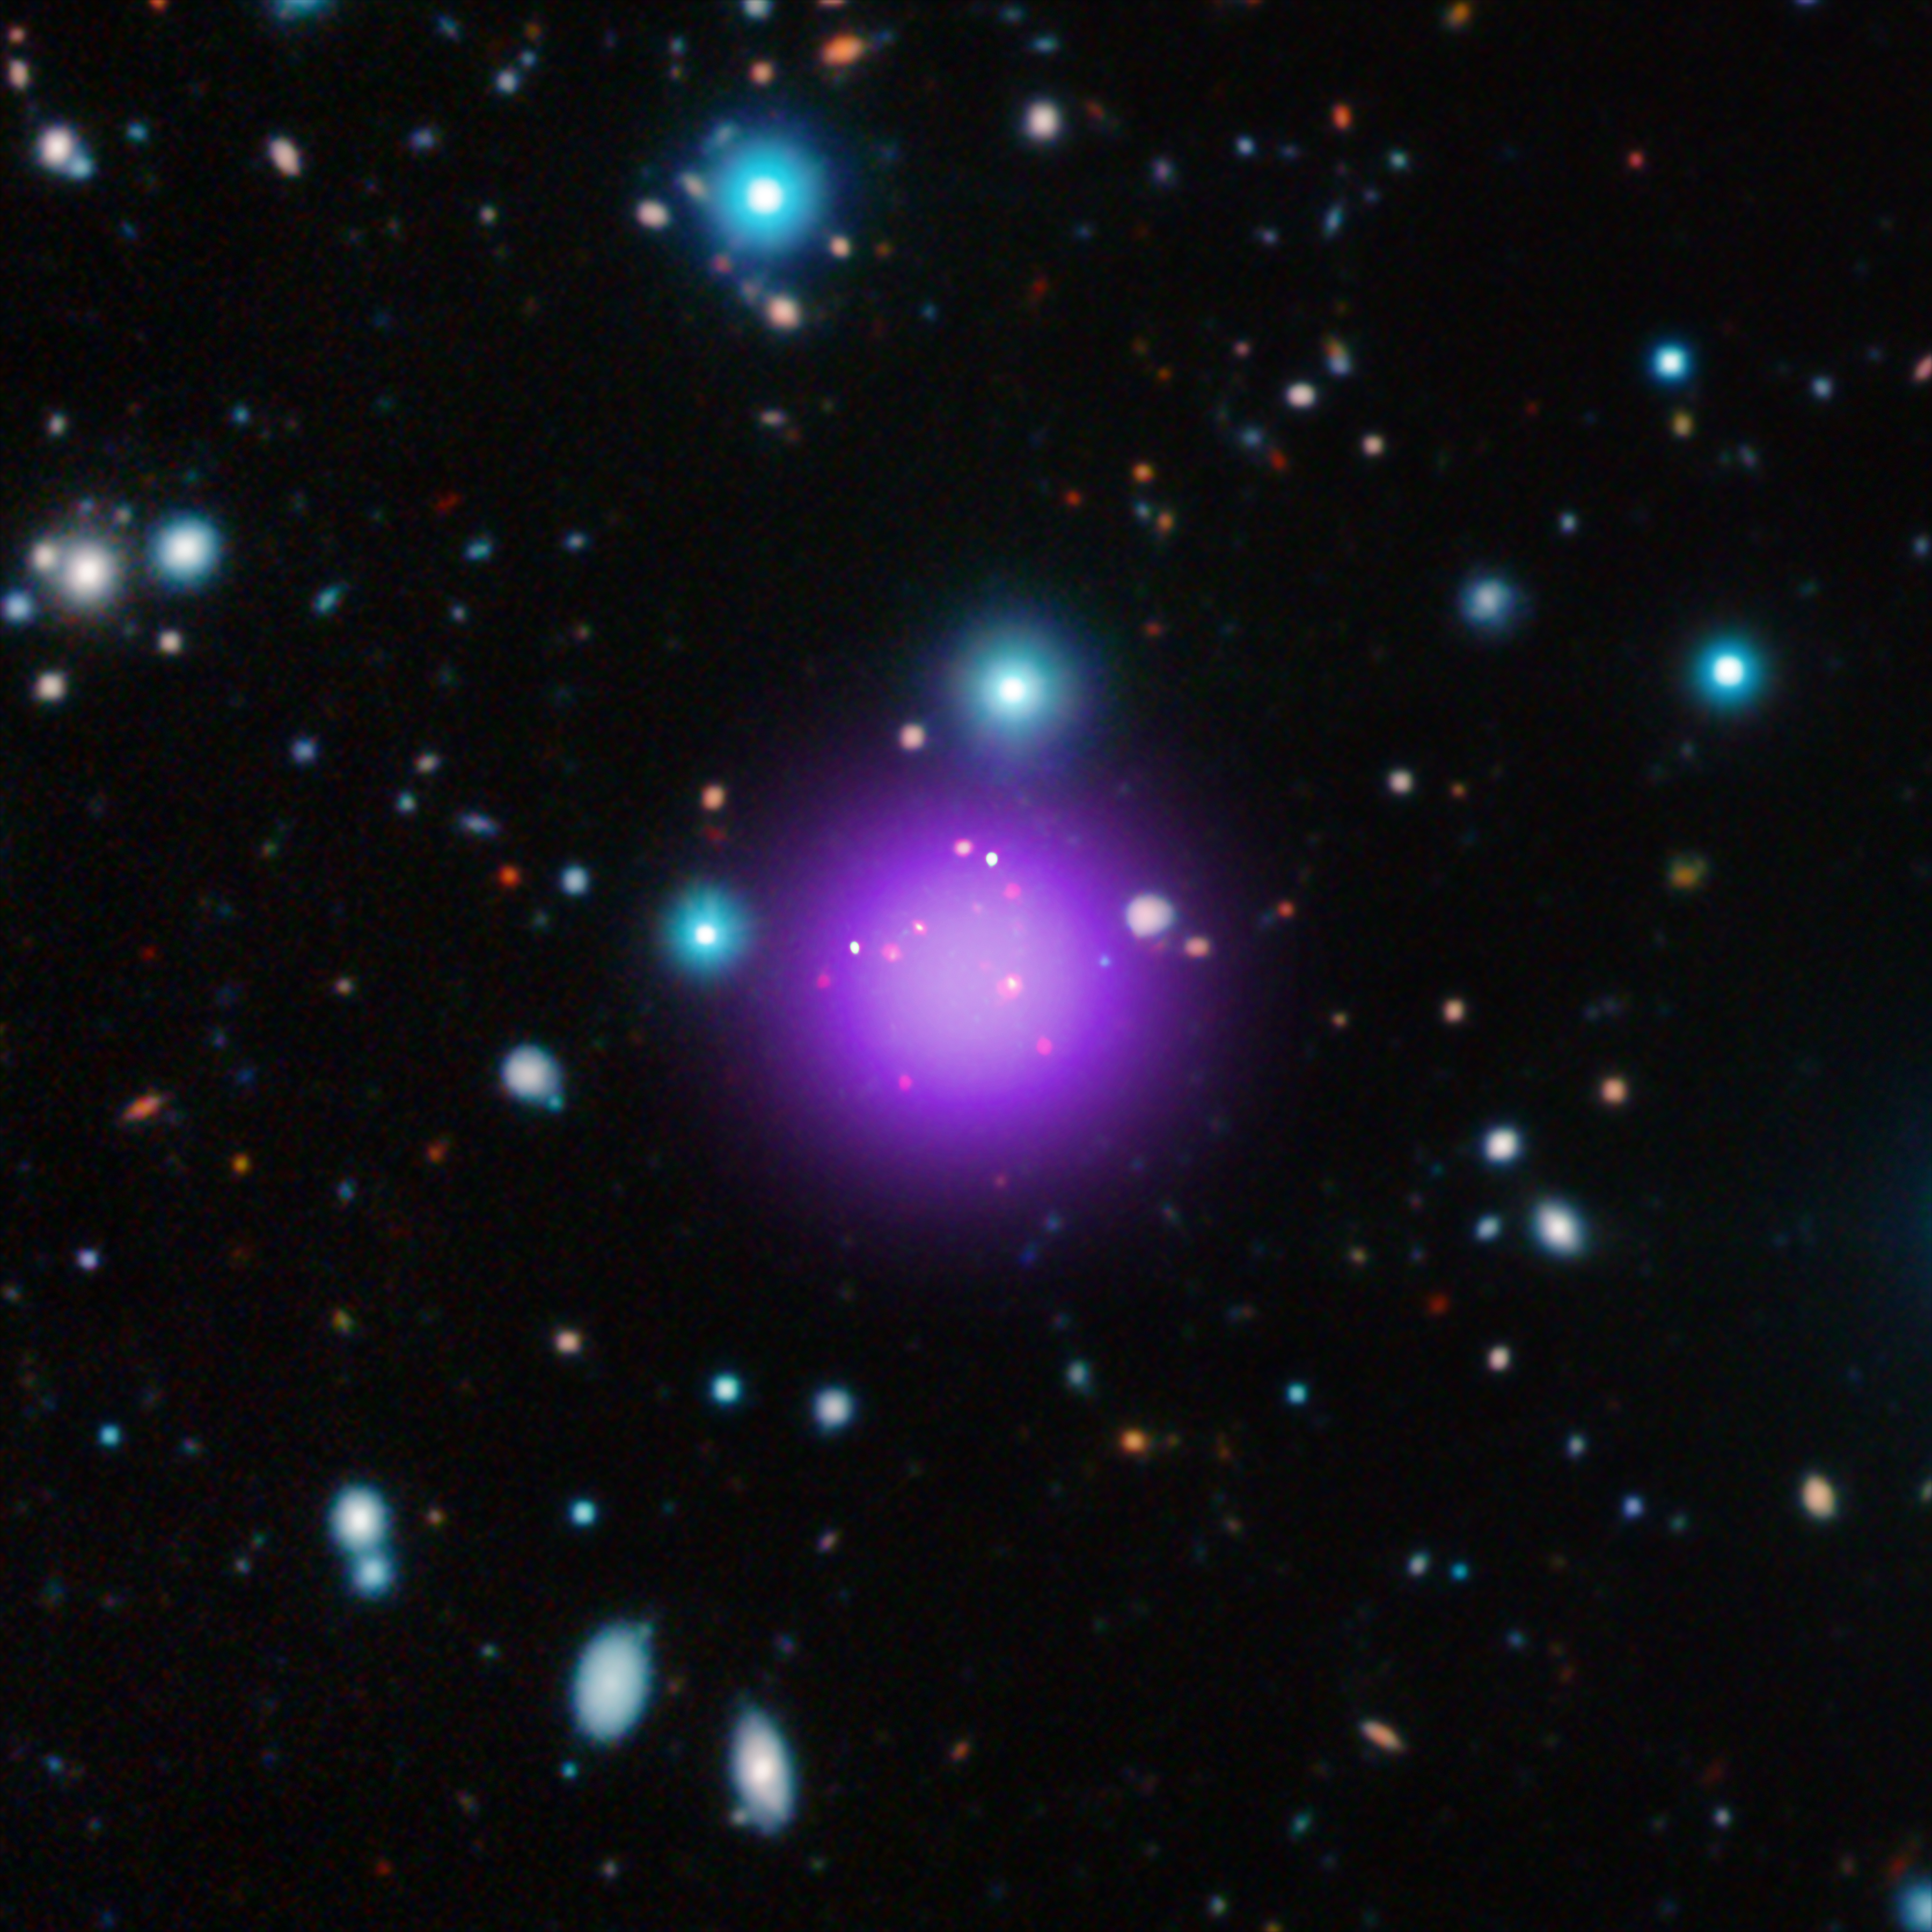 Galaxy Cluster 11.1 Billion Light-Years from Earth Is Most Distant Ever Seen